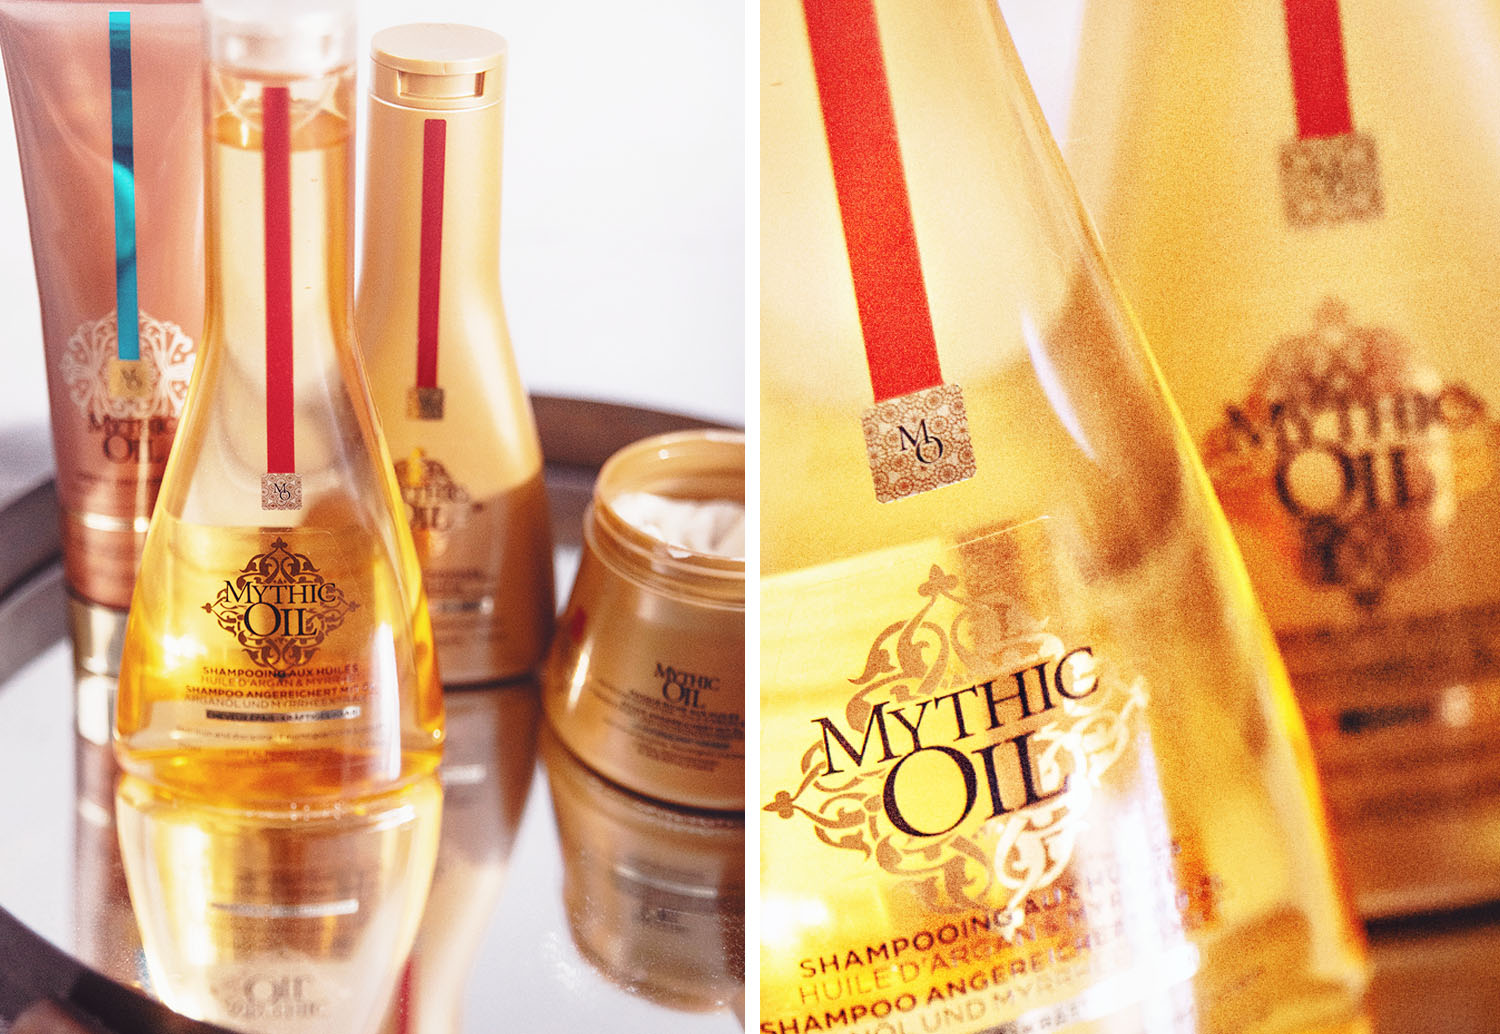 L'Oréal Professionnell Mythic Oil Shampoo & Conditioner